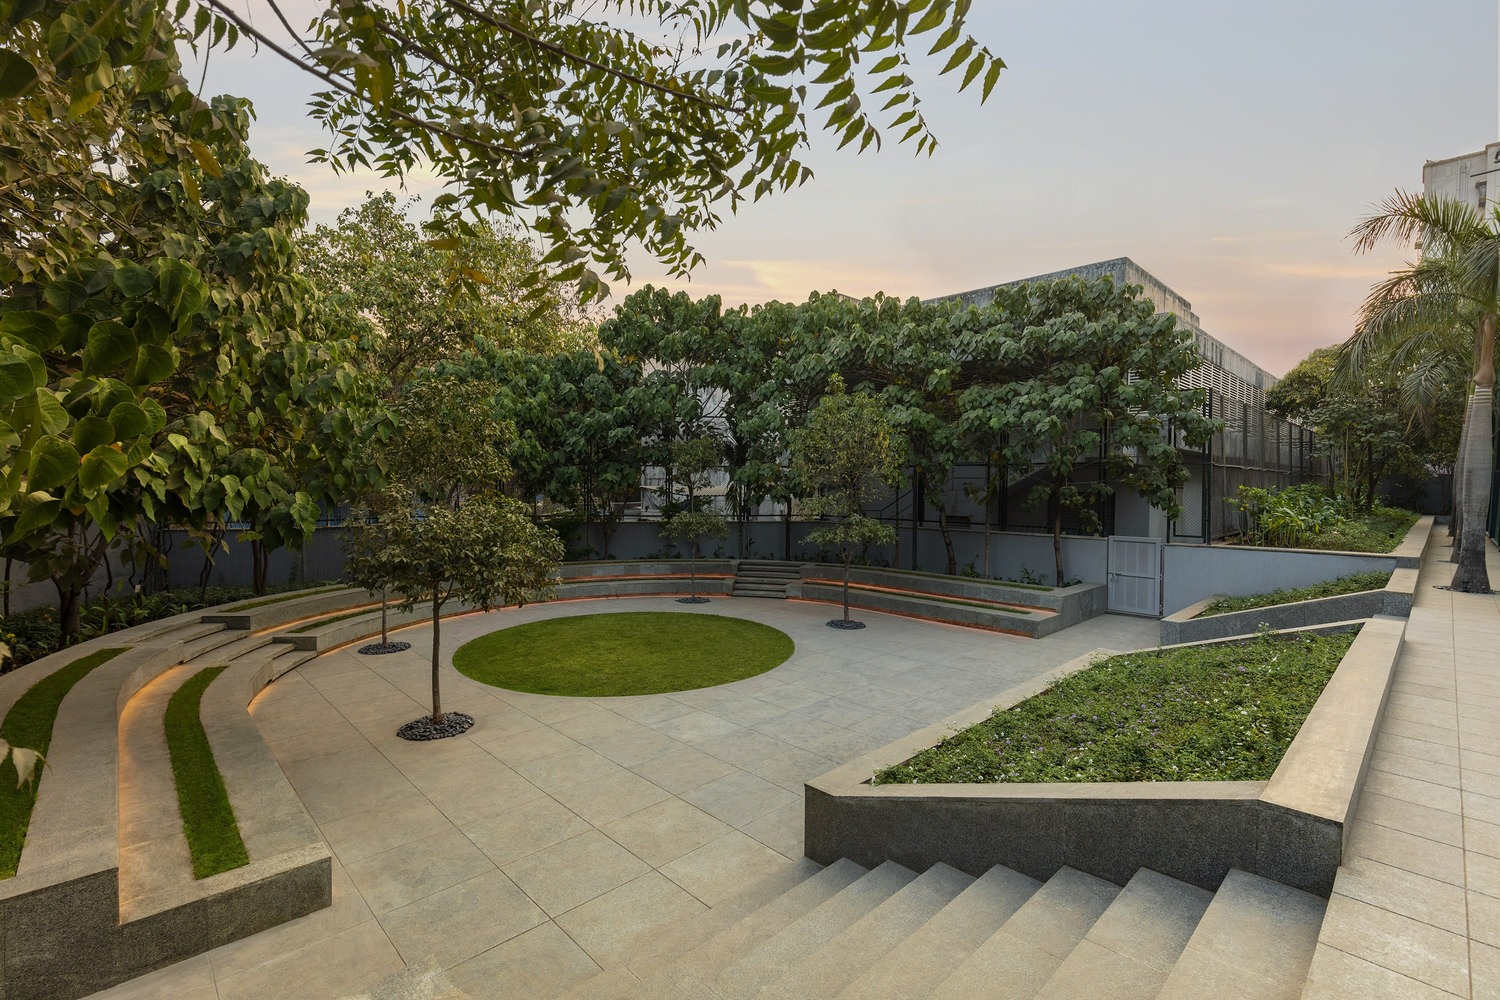 A beautiful view of courtyard in the outdoor with fountains and with lined trees surrounded in the park